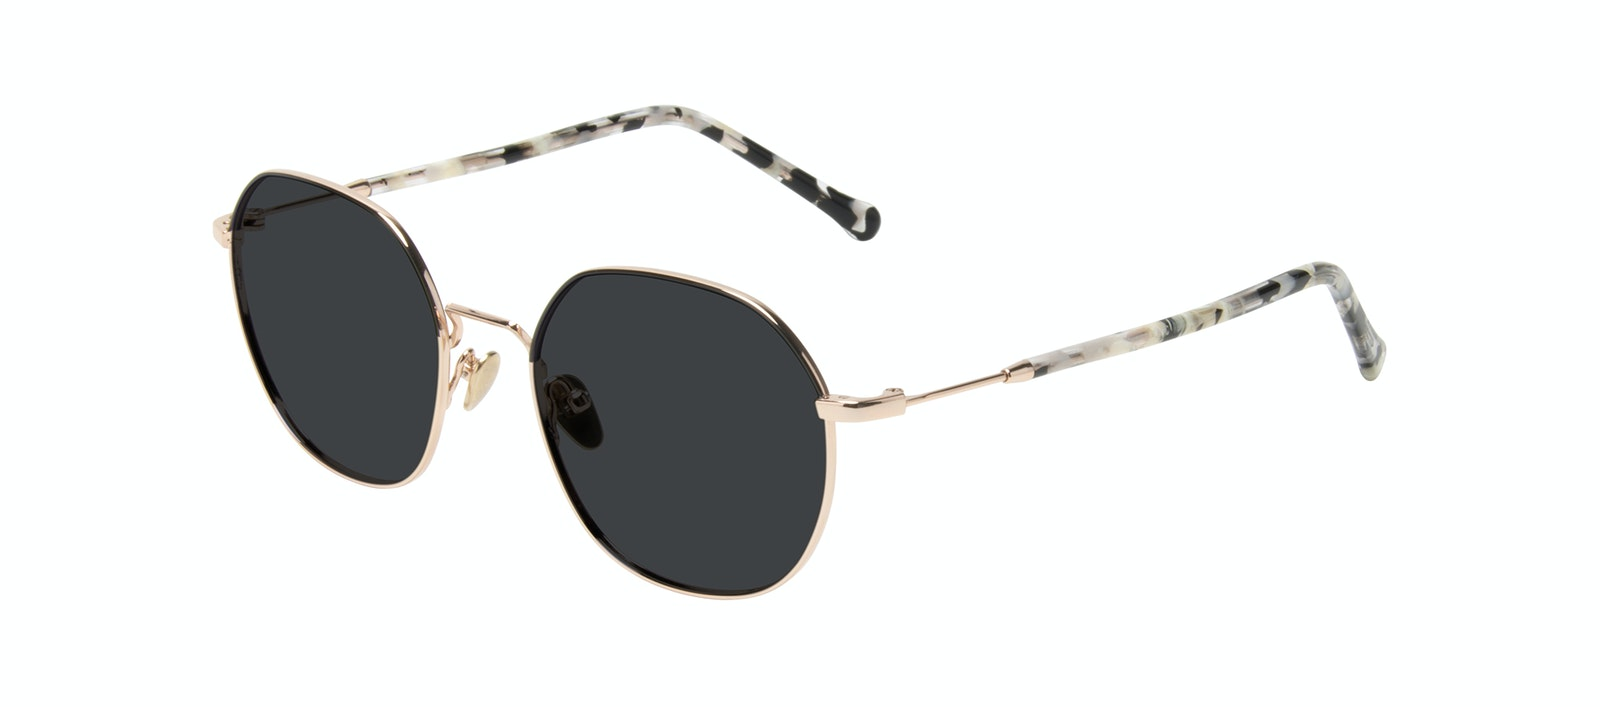 Affordable Fashion Glasses Round Sunglasses Women Coco Deep Gold Tilt